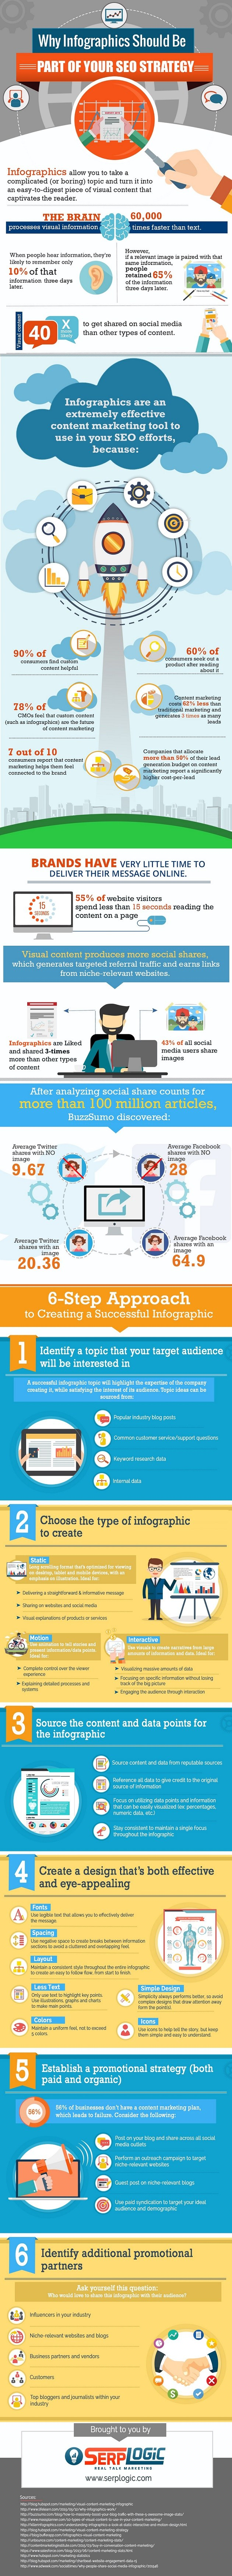 Six Steps to Creating a Successful Infographic for Your Business